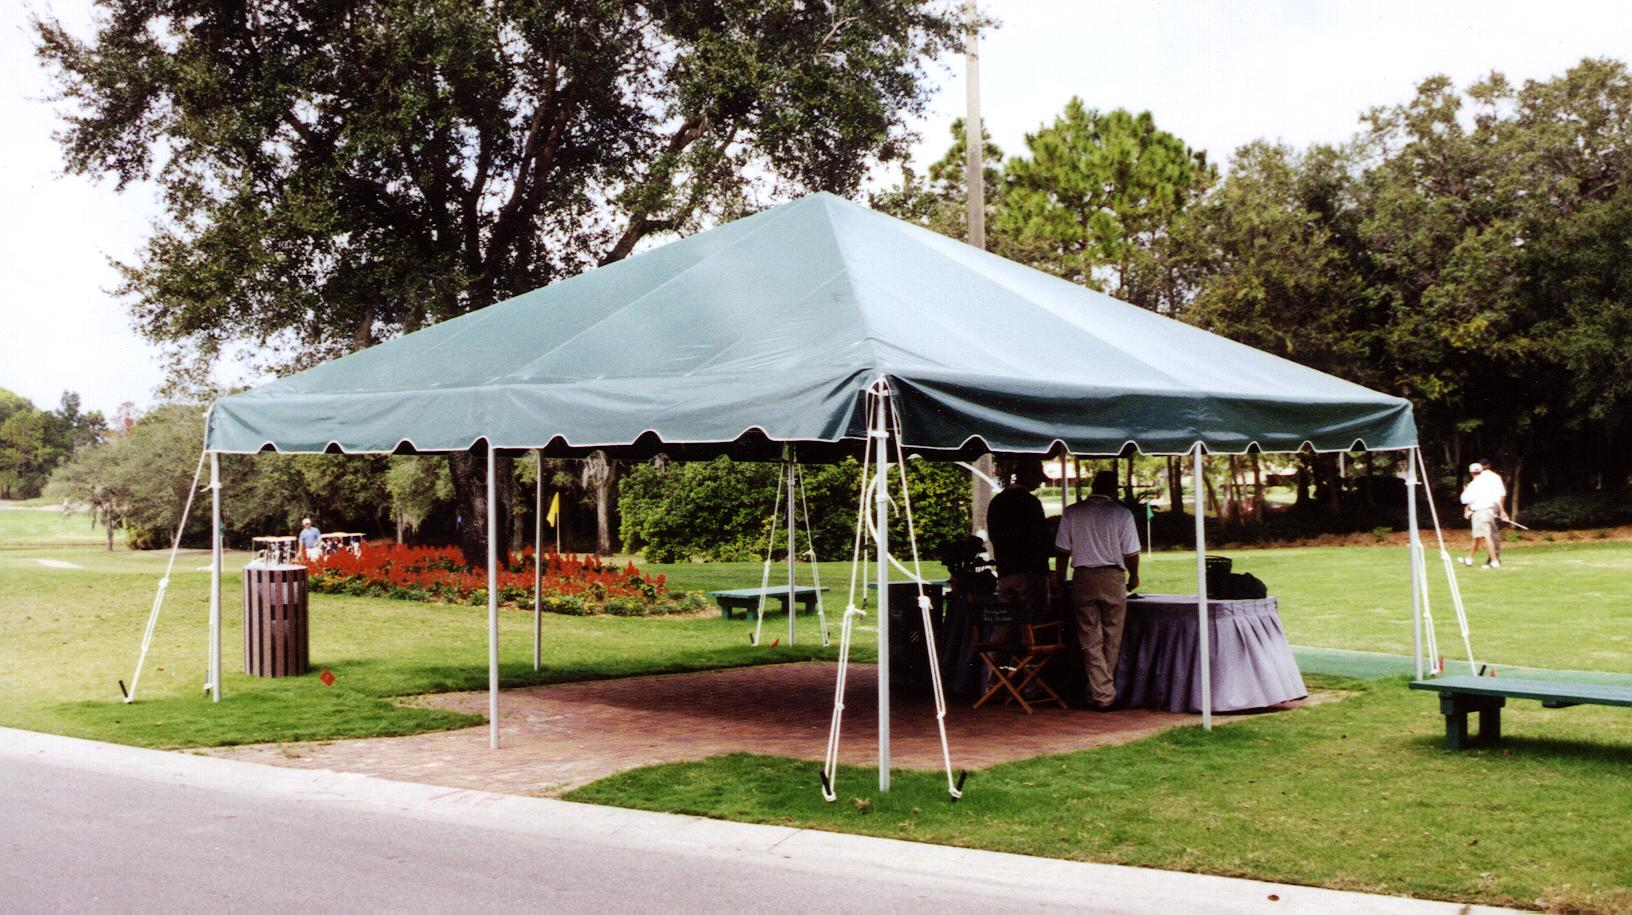 & 20 x 20 Frame Tent